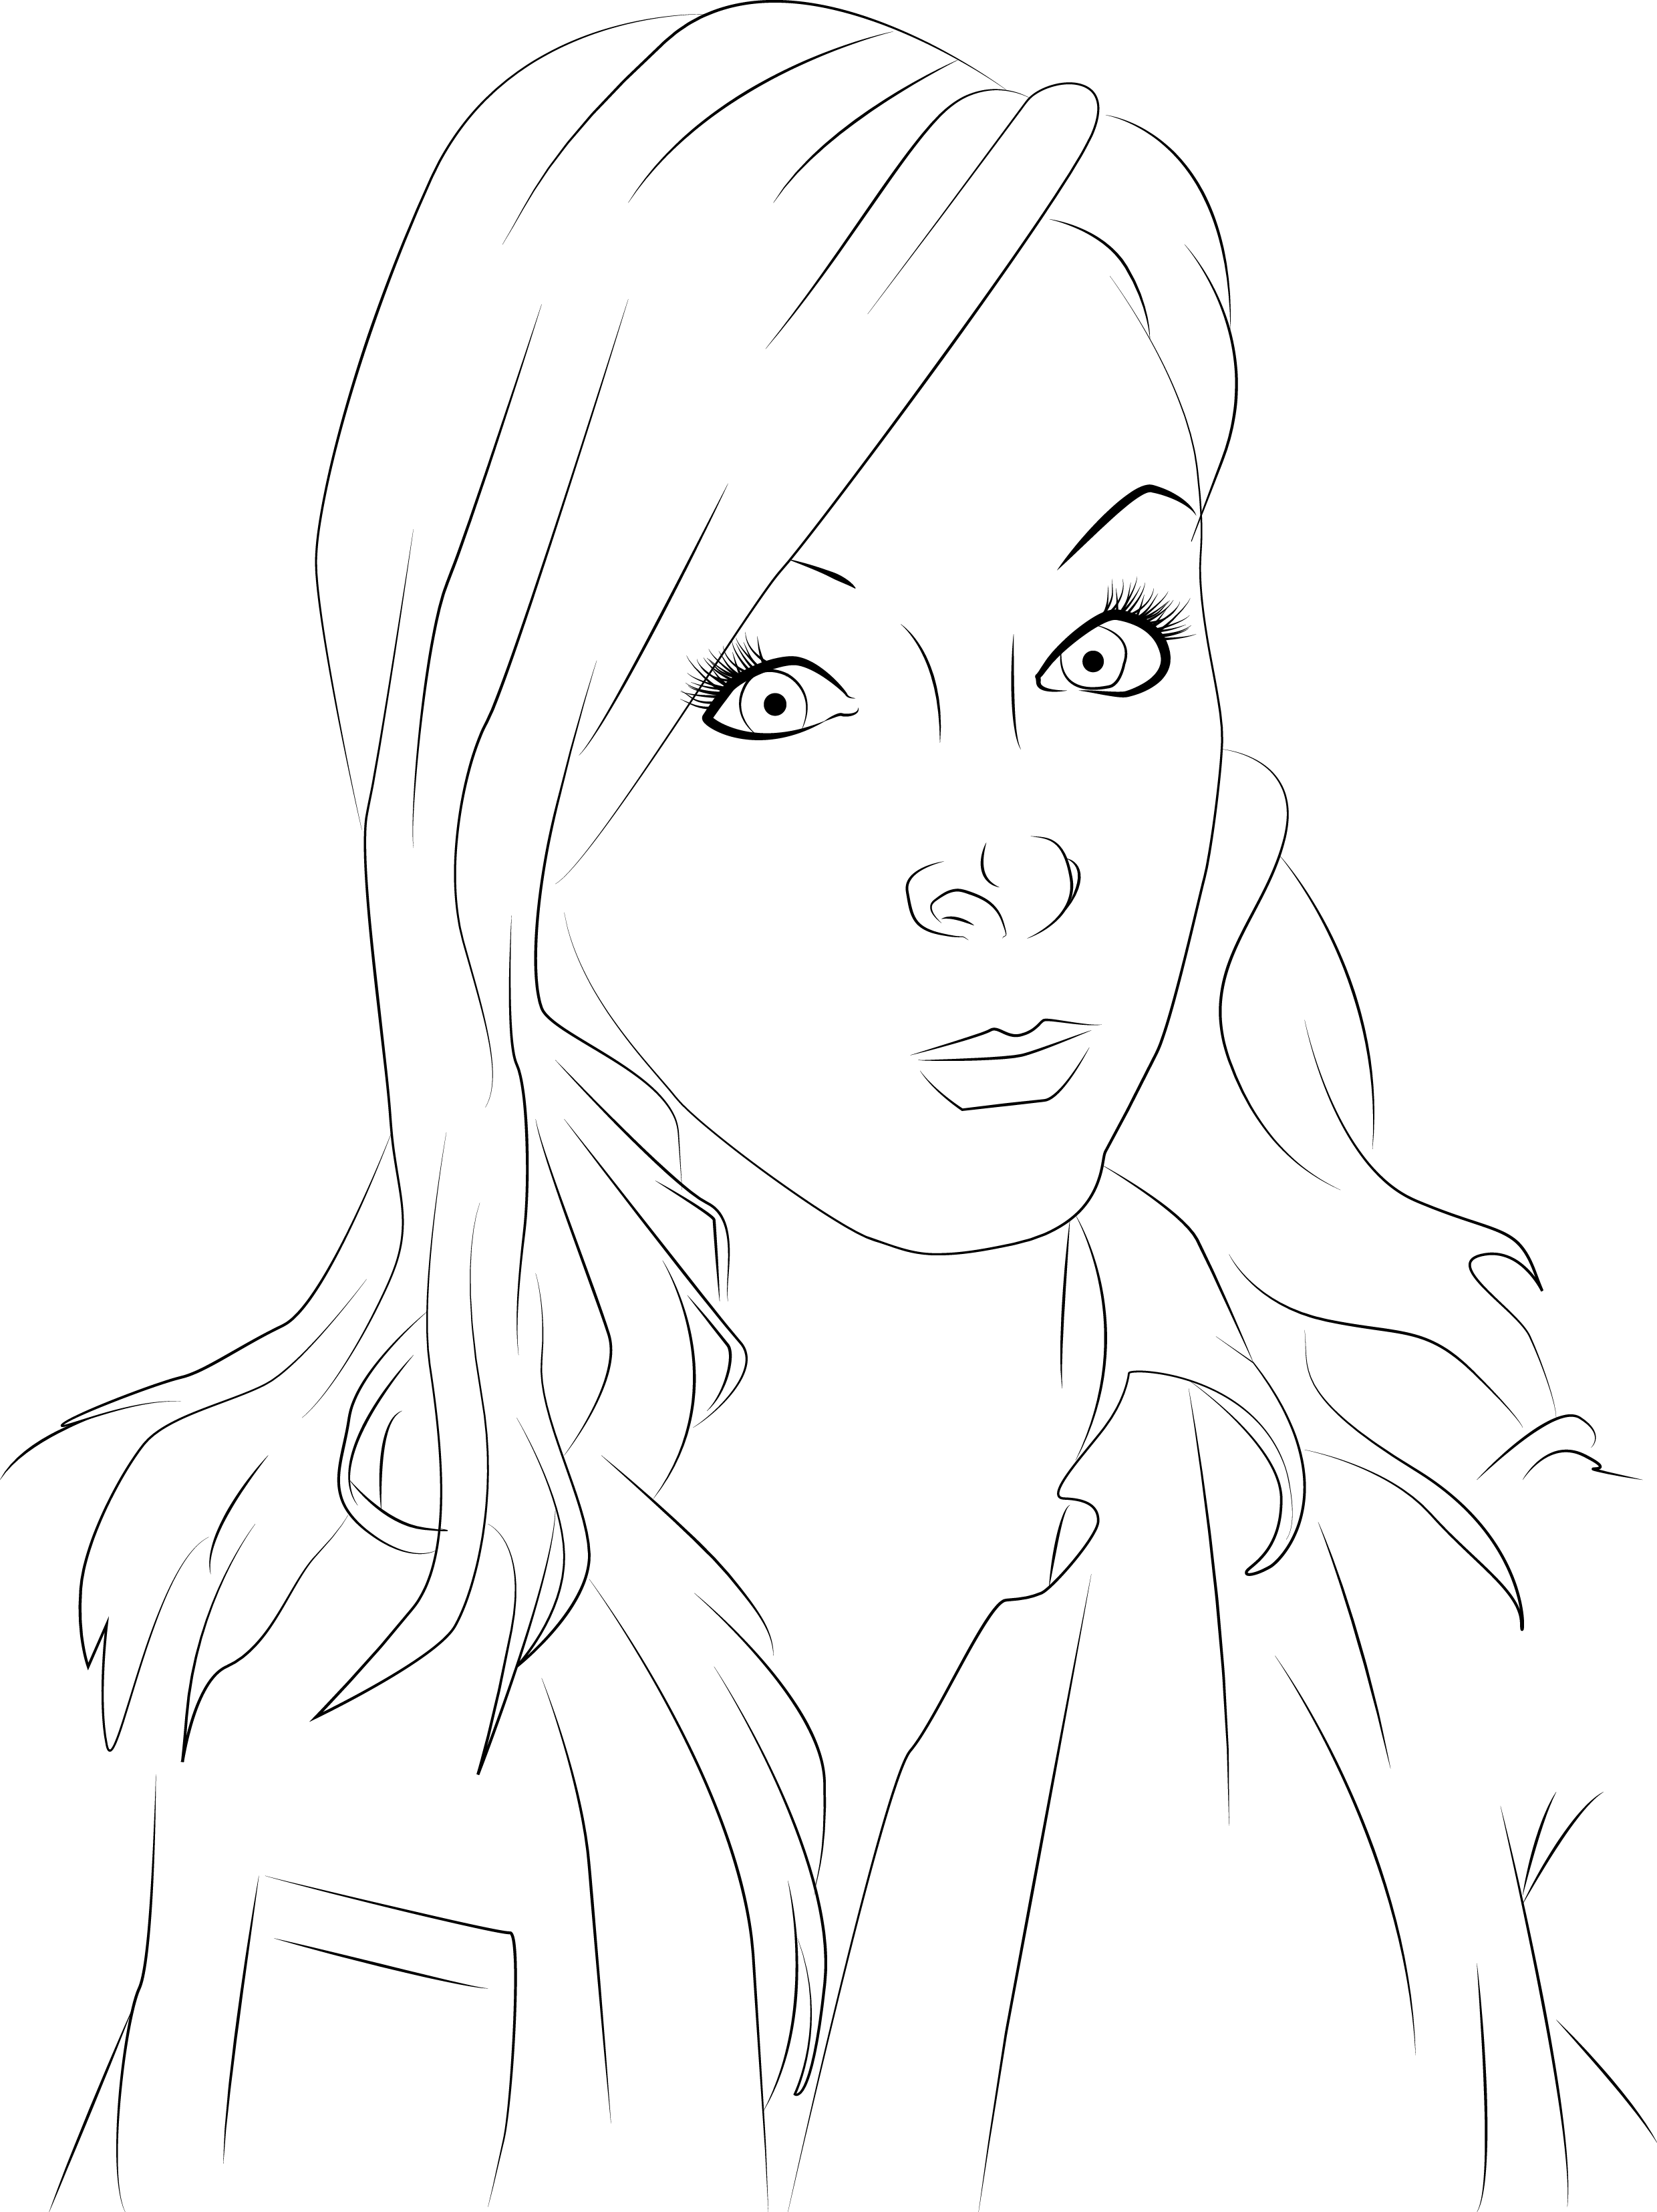 turn your photo into sketch or vector image